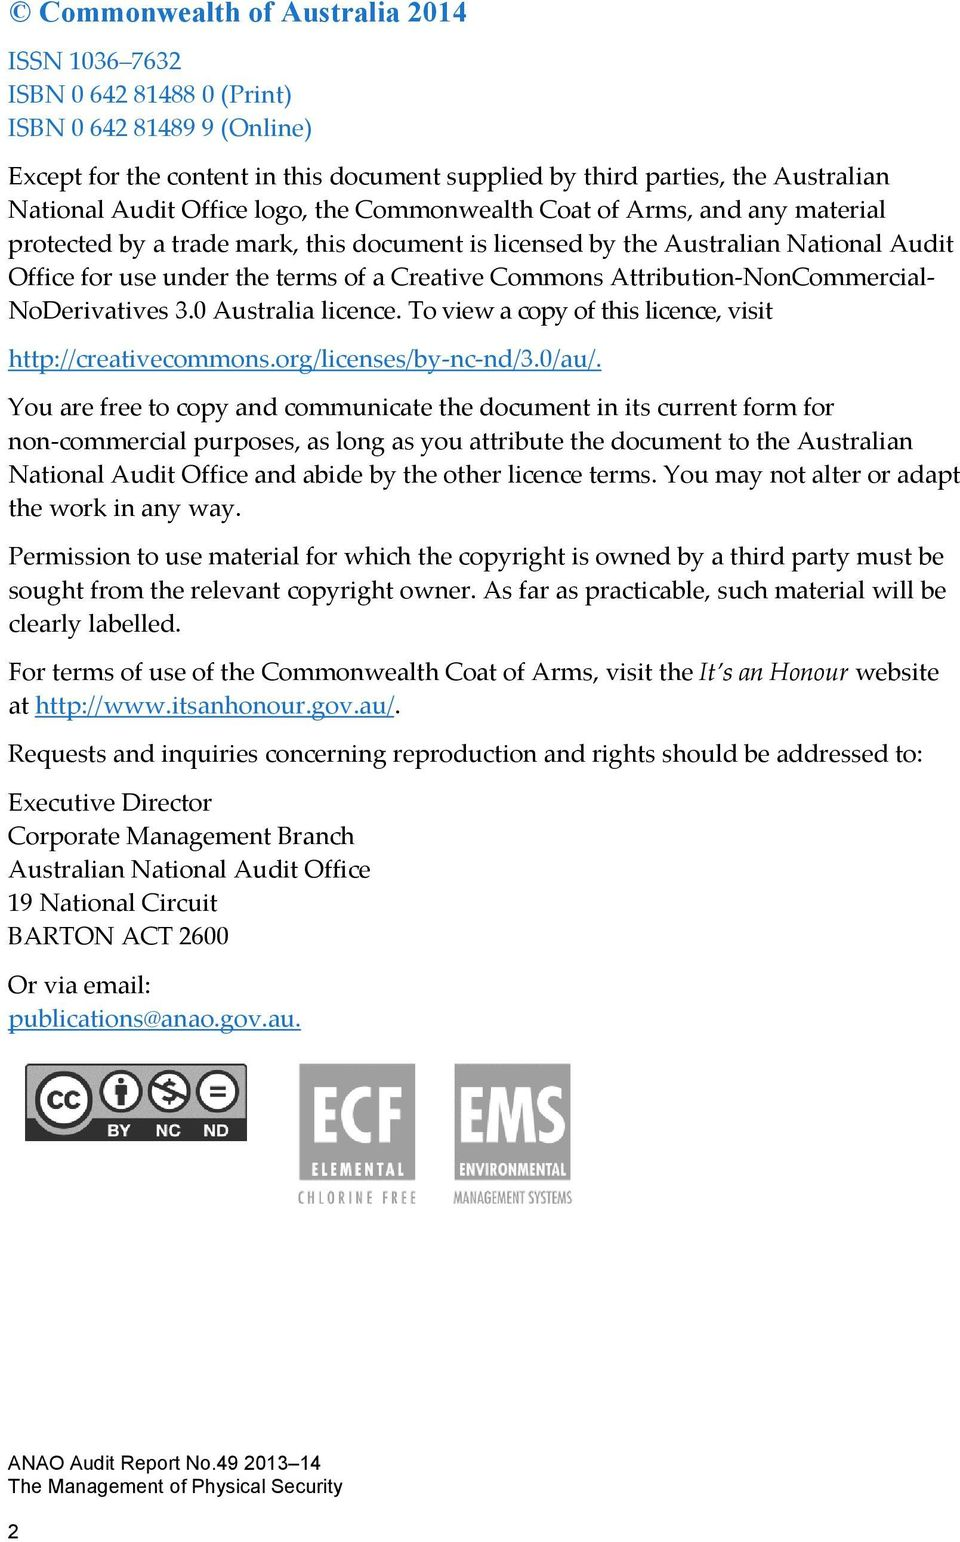 Attribution NonCommercial NoDerivatives 3.0 Australia licence. To view a copy of this licence, visit http://creativecommons.org/licenses/by nc nd/3.0/au/.